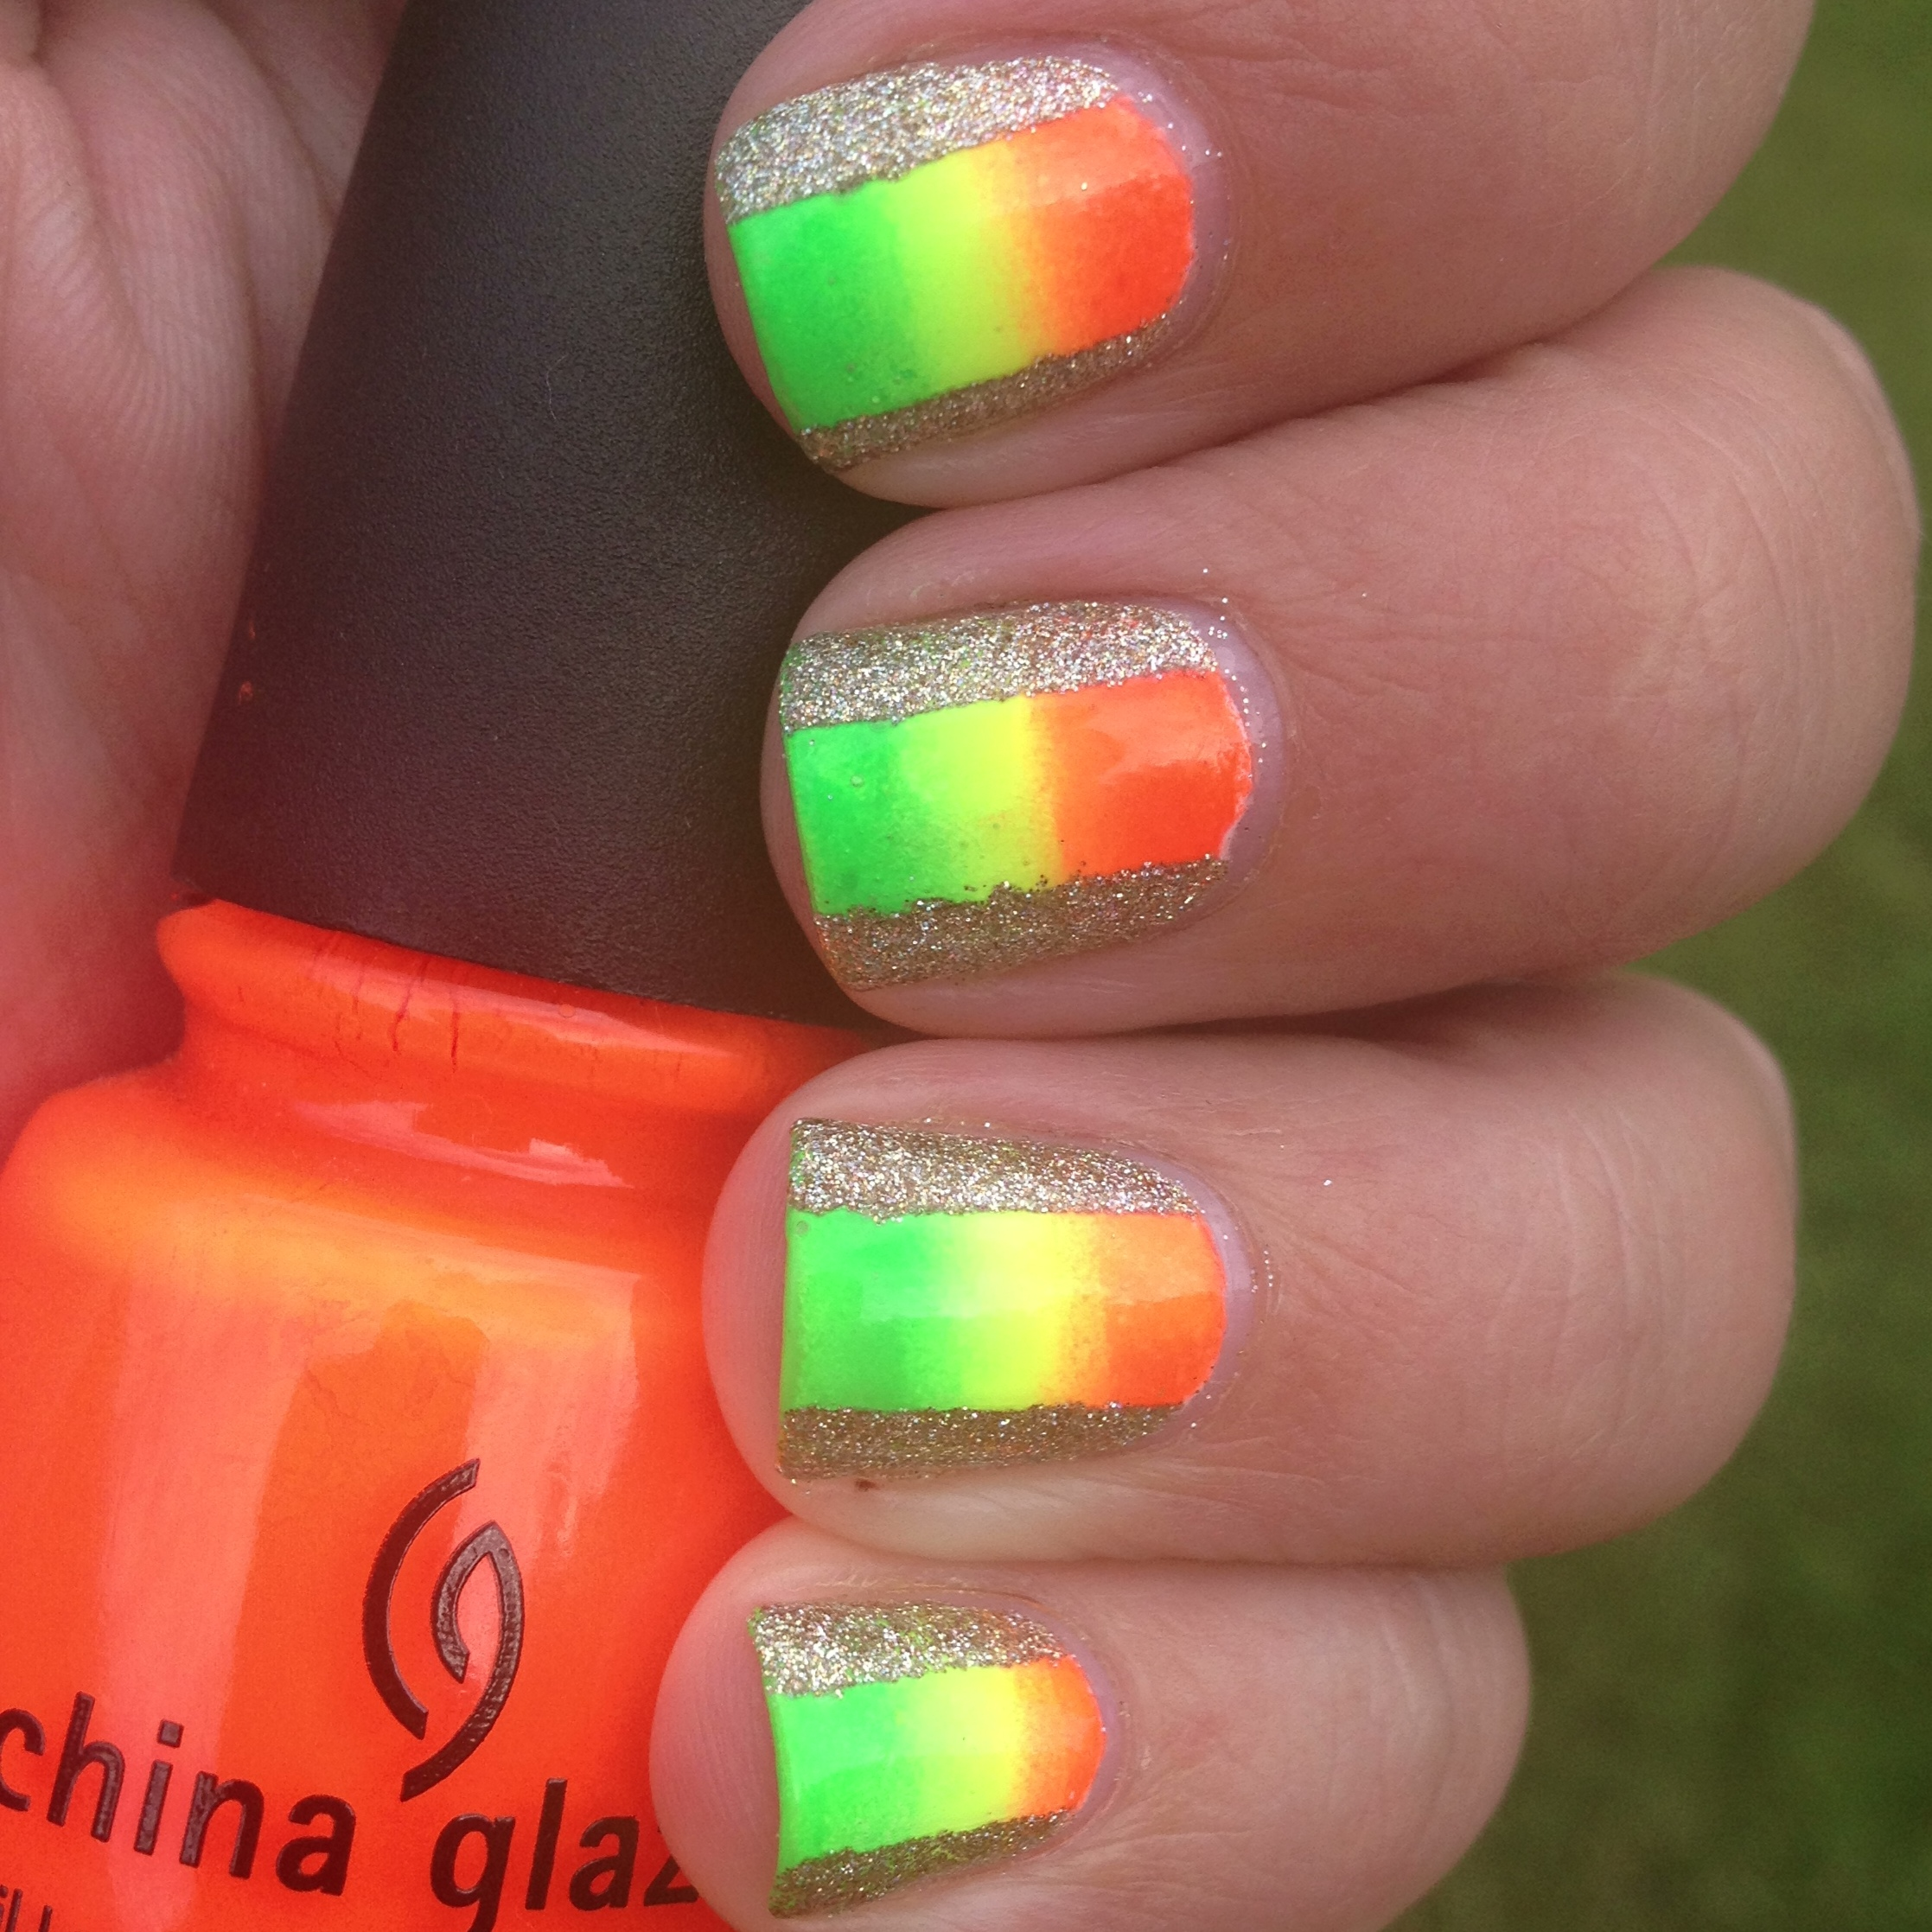 Neon and Glitter Color Blocked Nails | Polish Me, Please!